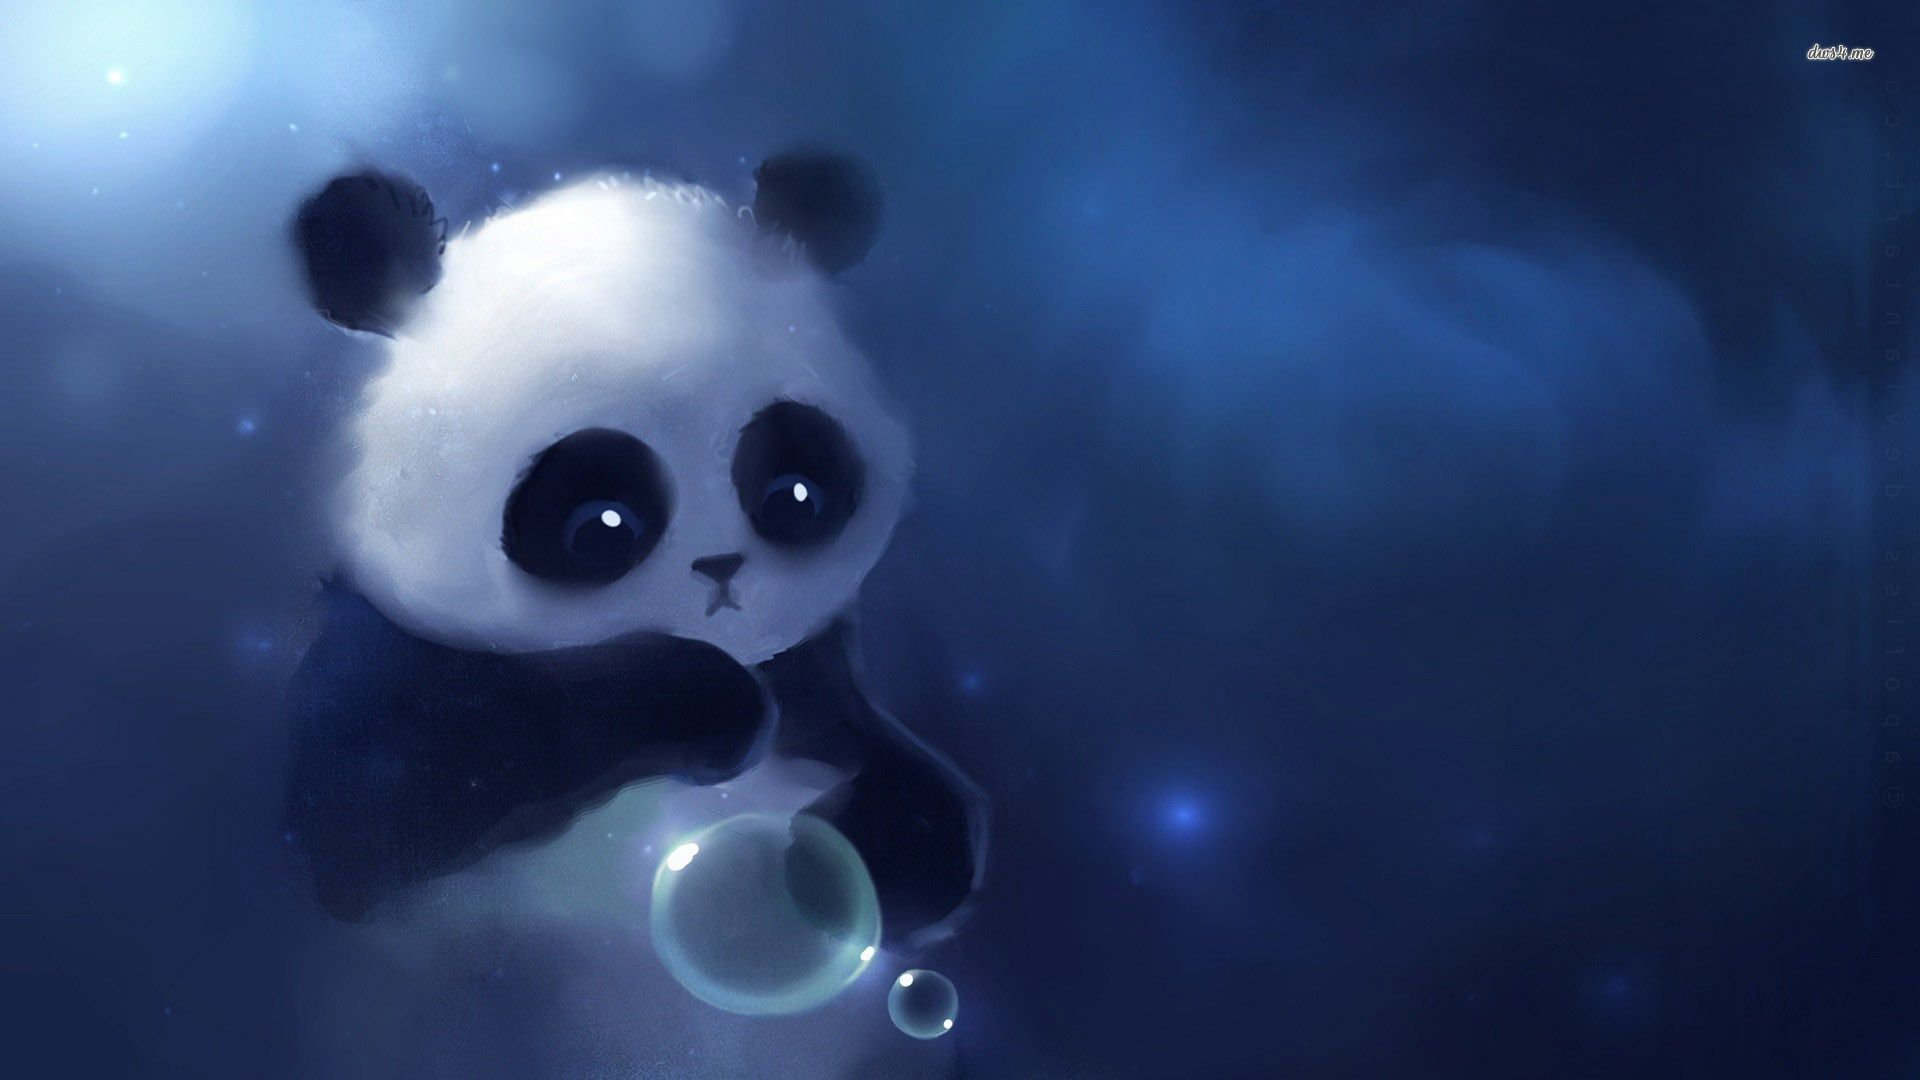 Drawn wallpaper panda - Pencil and in color drawn wallpaper panda